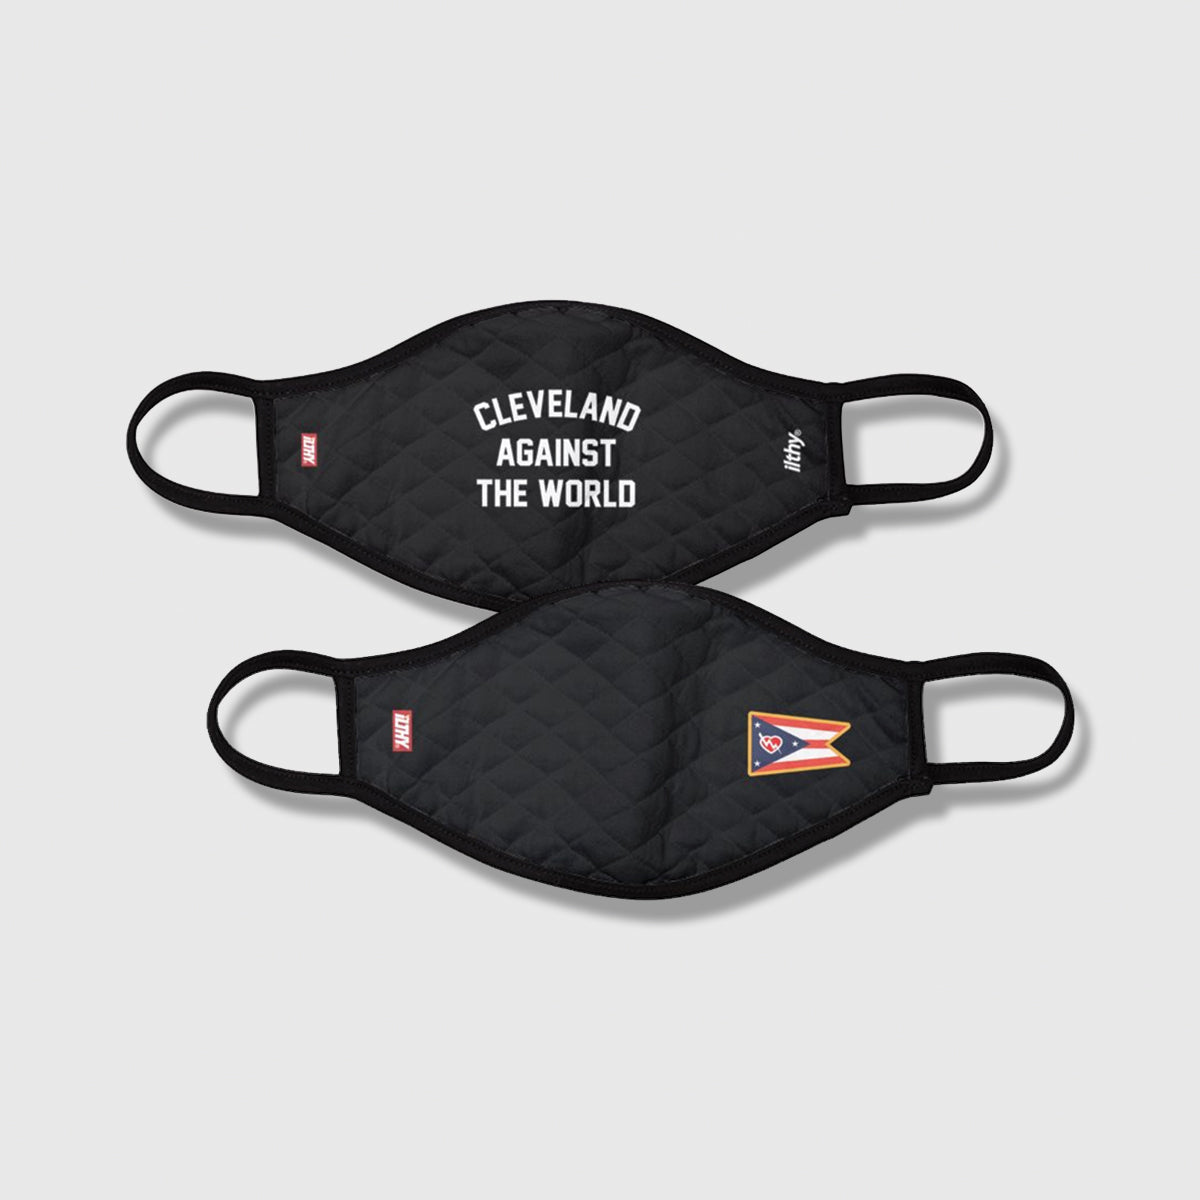 CLEVELAND LOCAL FACE MASK VOL. 1 (2 PACK)